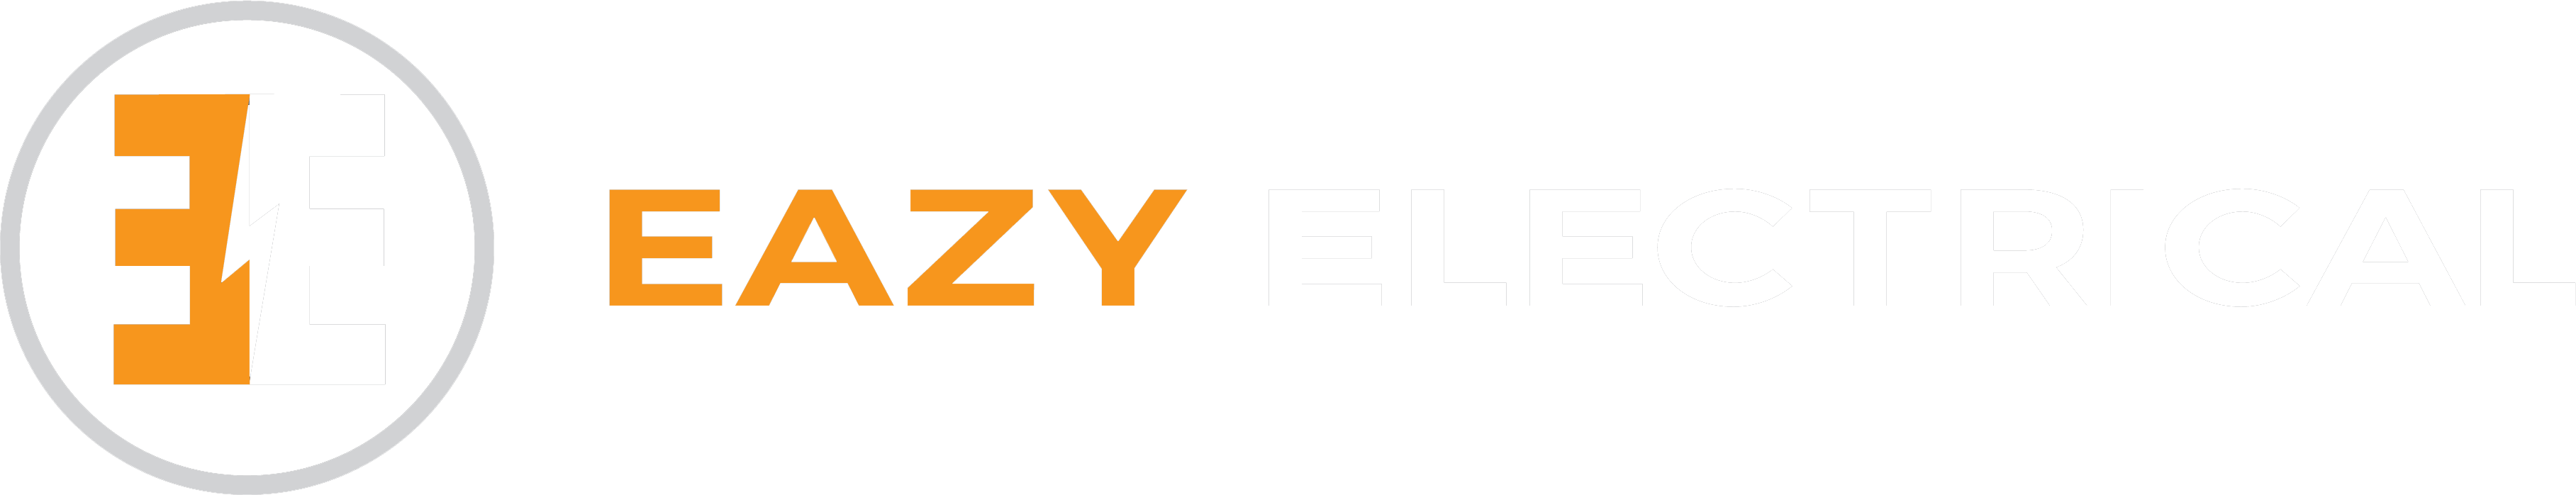 Eazy Electrical logo